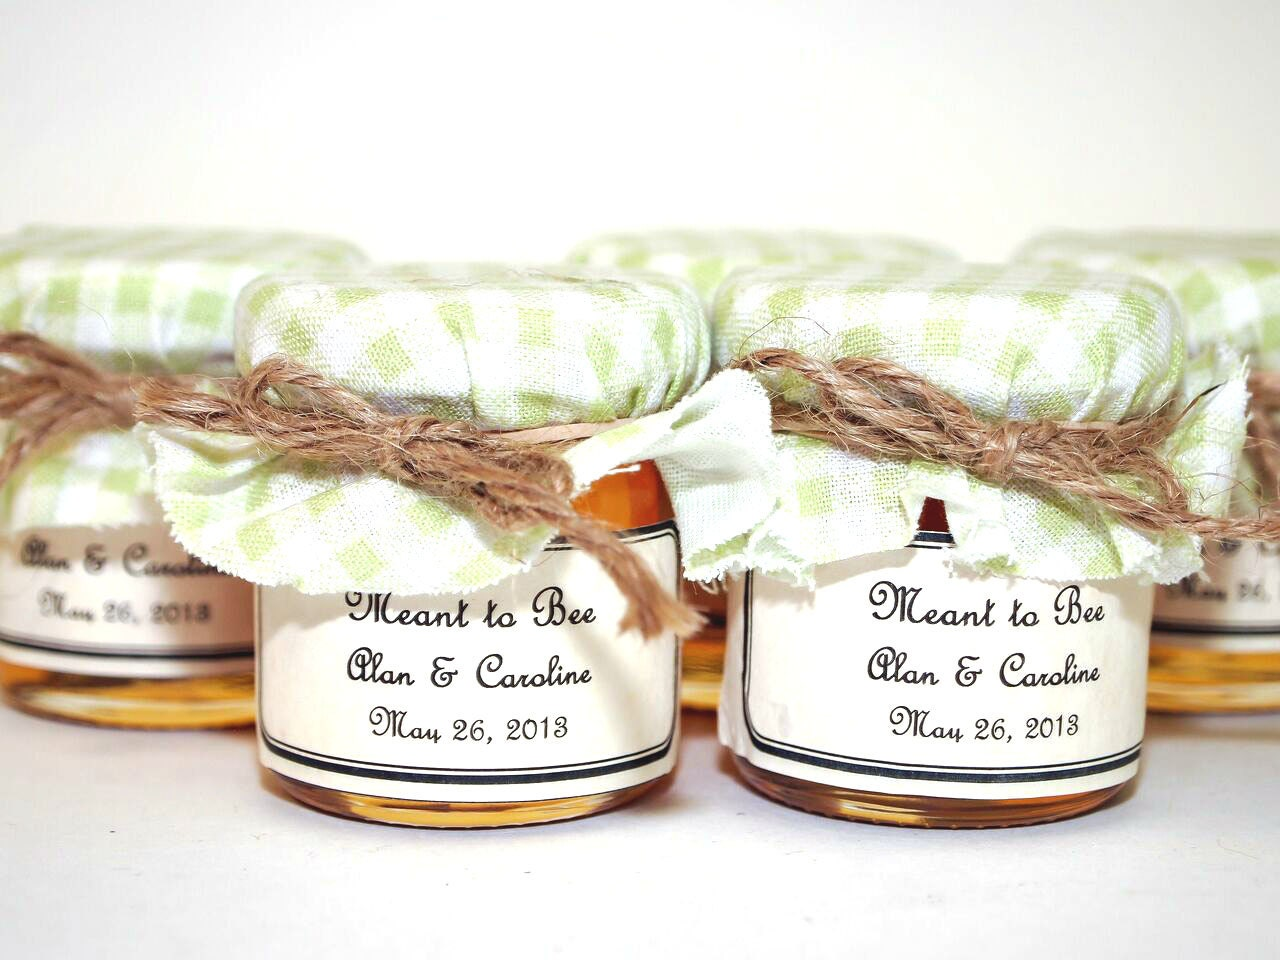 SALE 15% OFF ends Sunday 75 Small Mason Jar Honey Wedding Favors ...